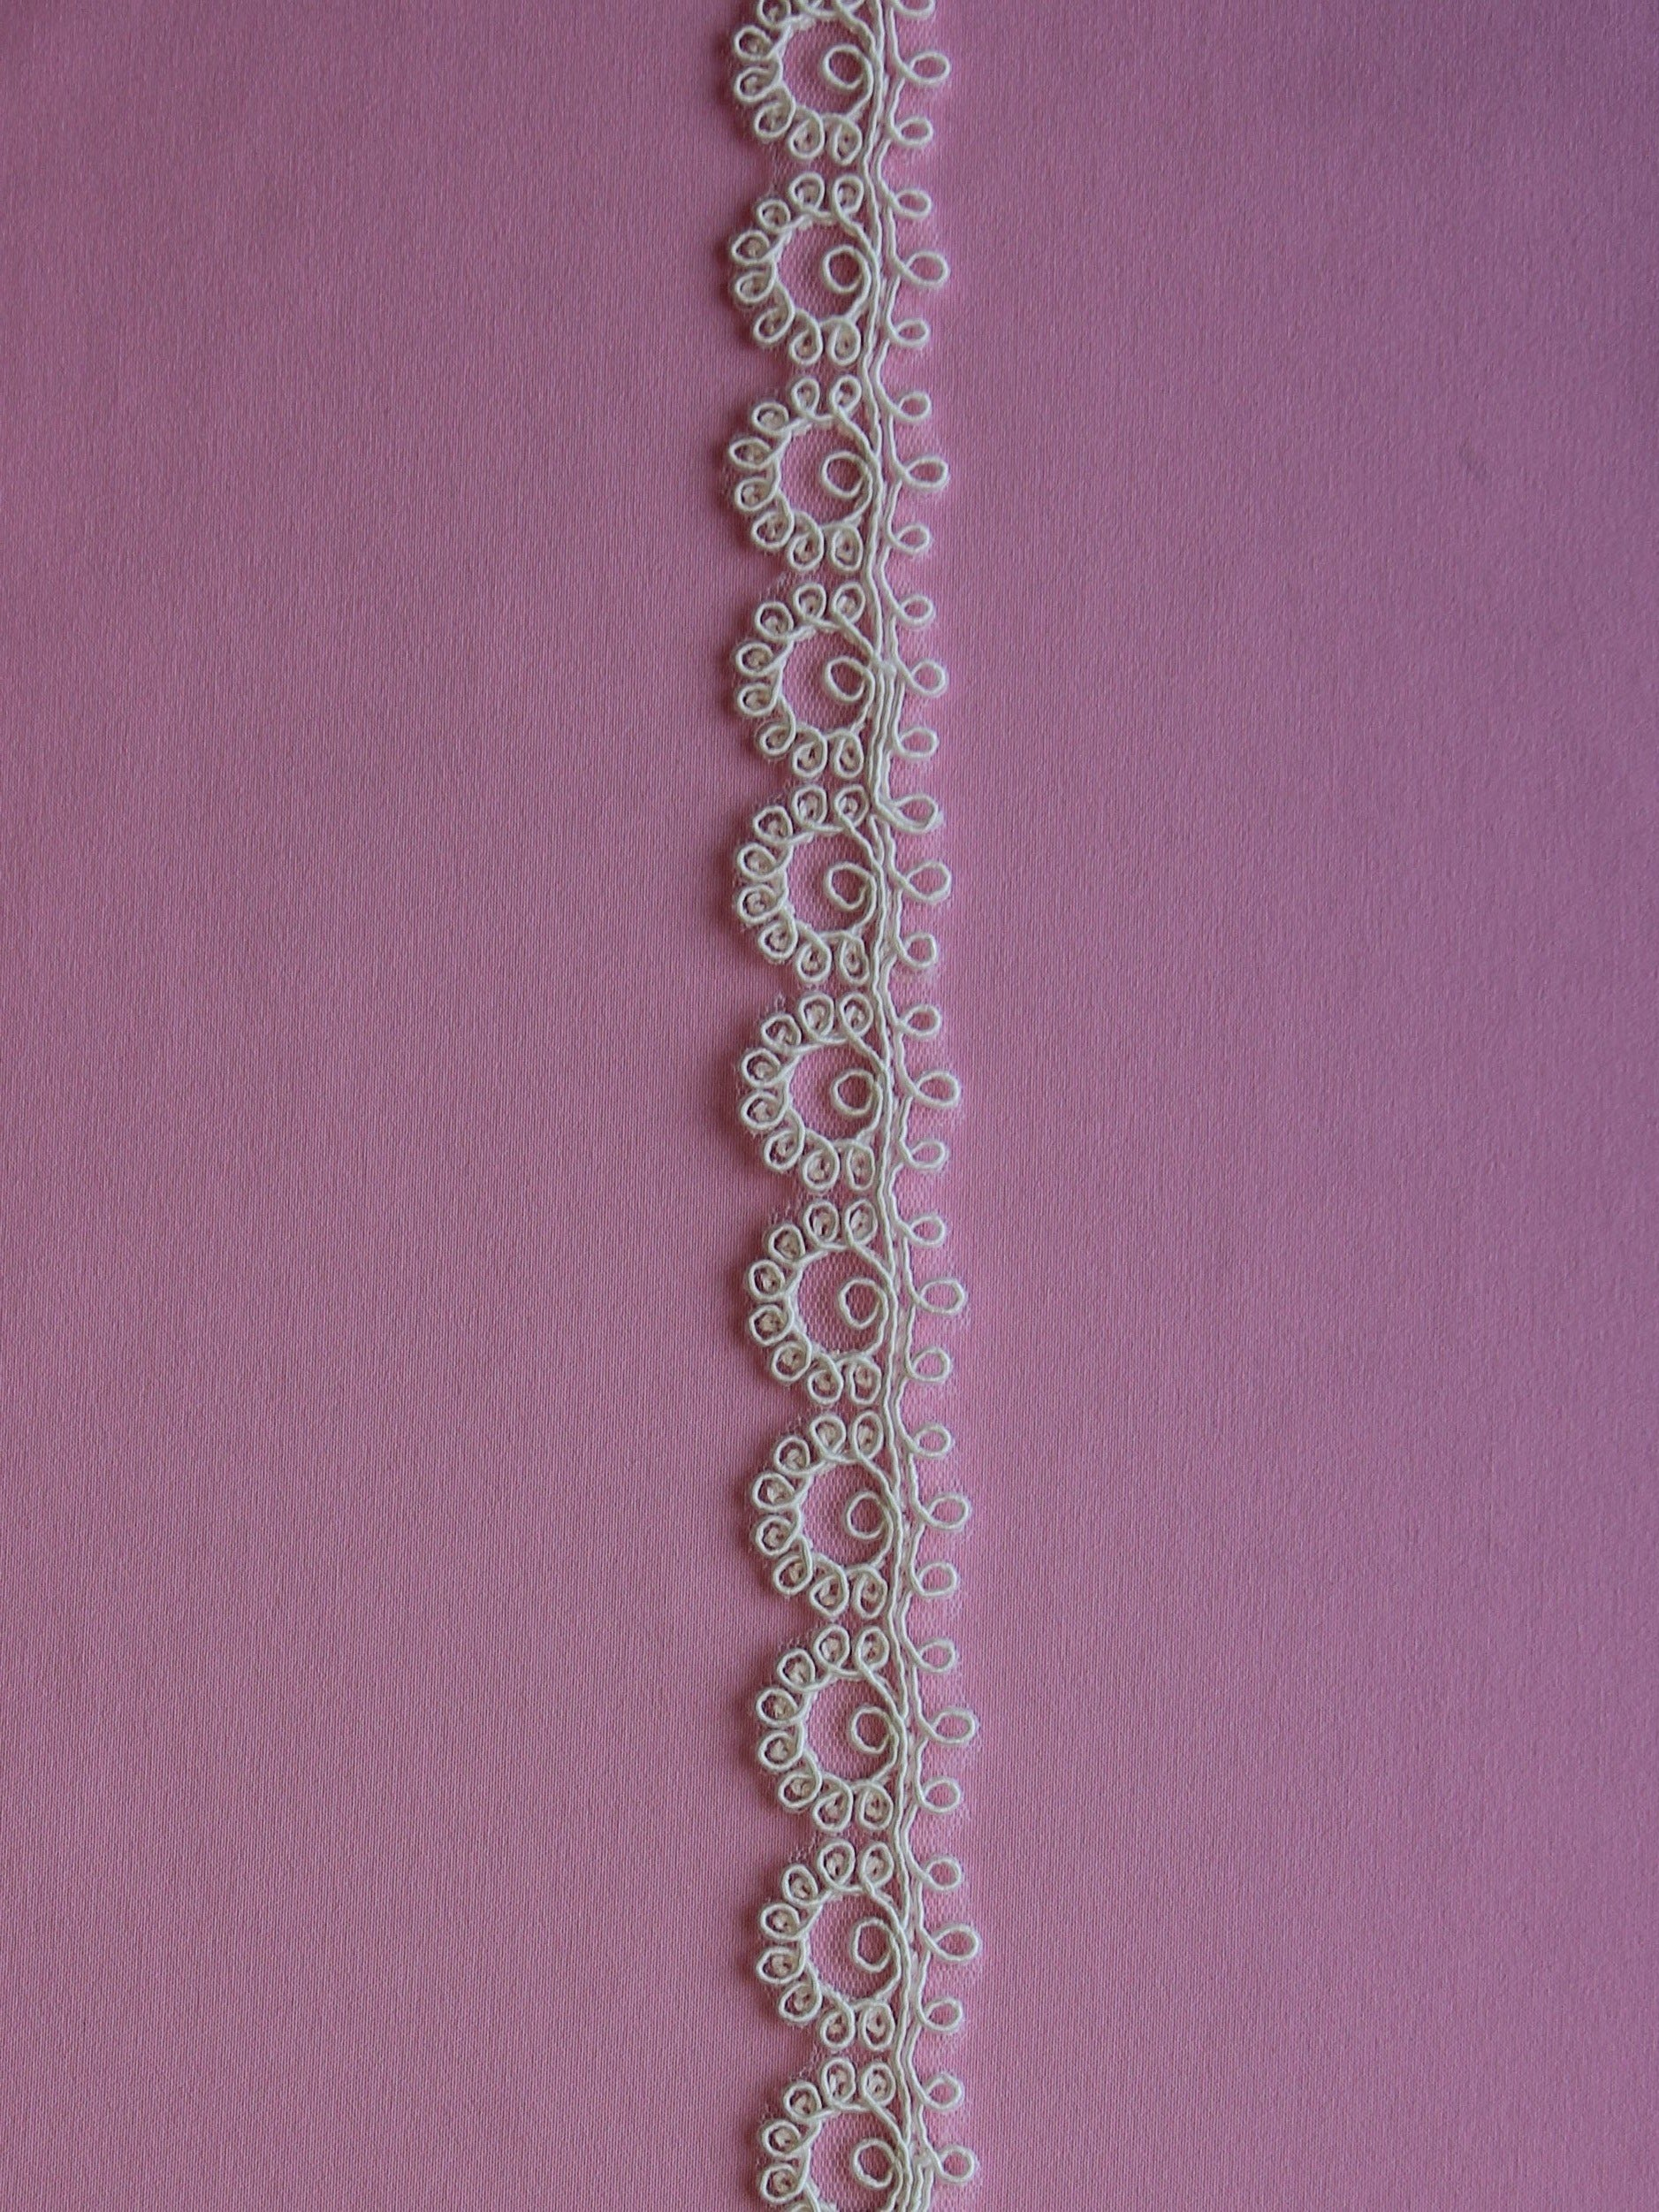 Ivory Corded Lace Trim - Ramson